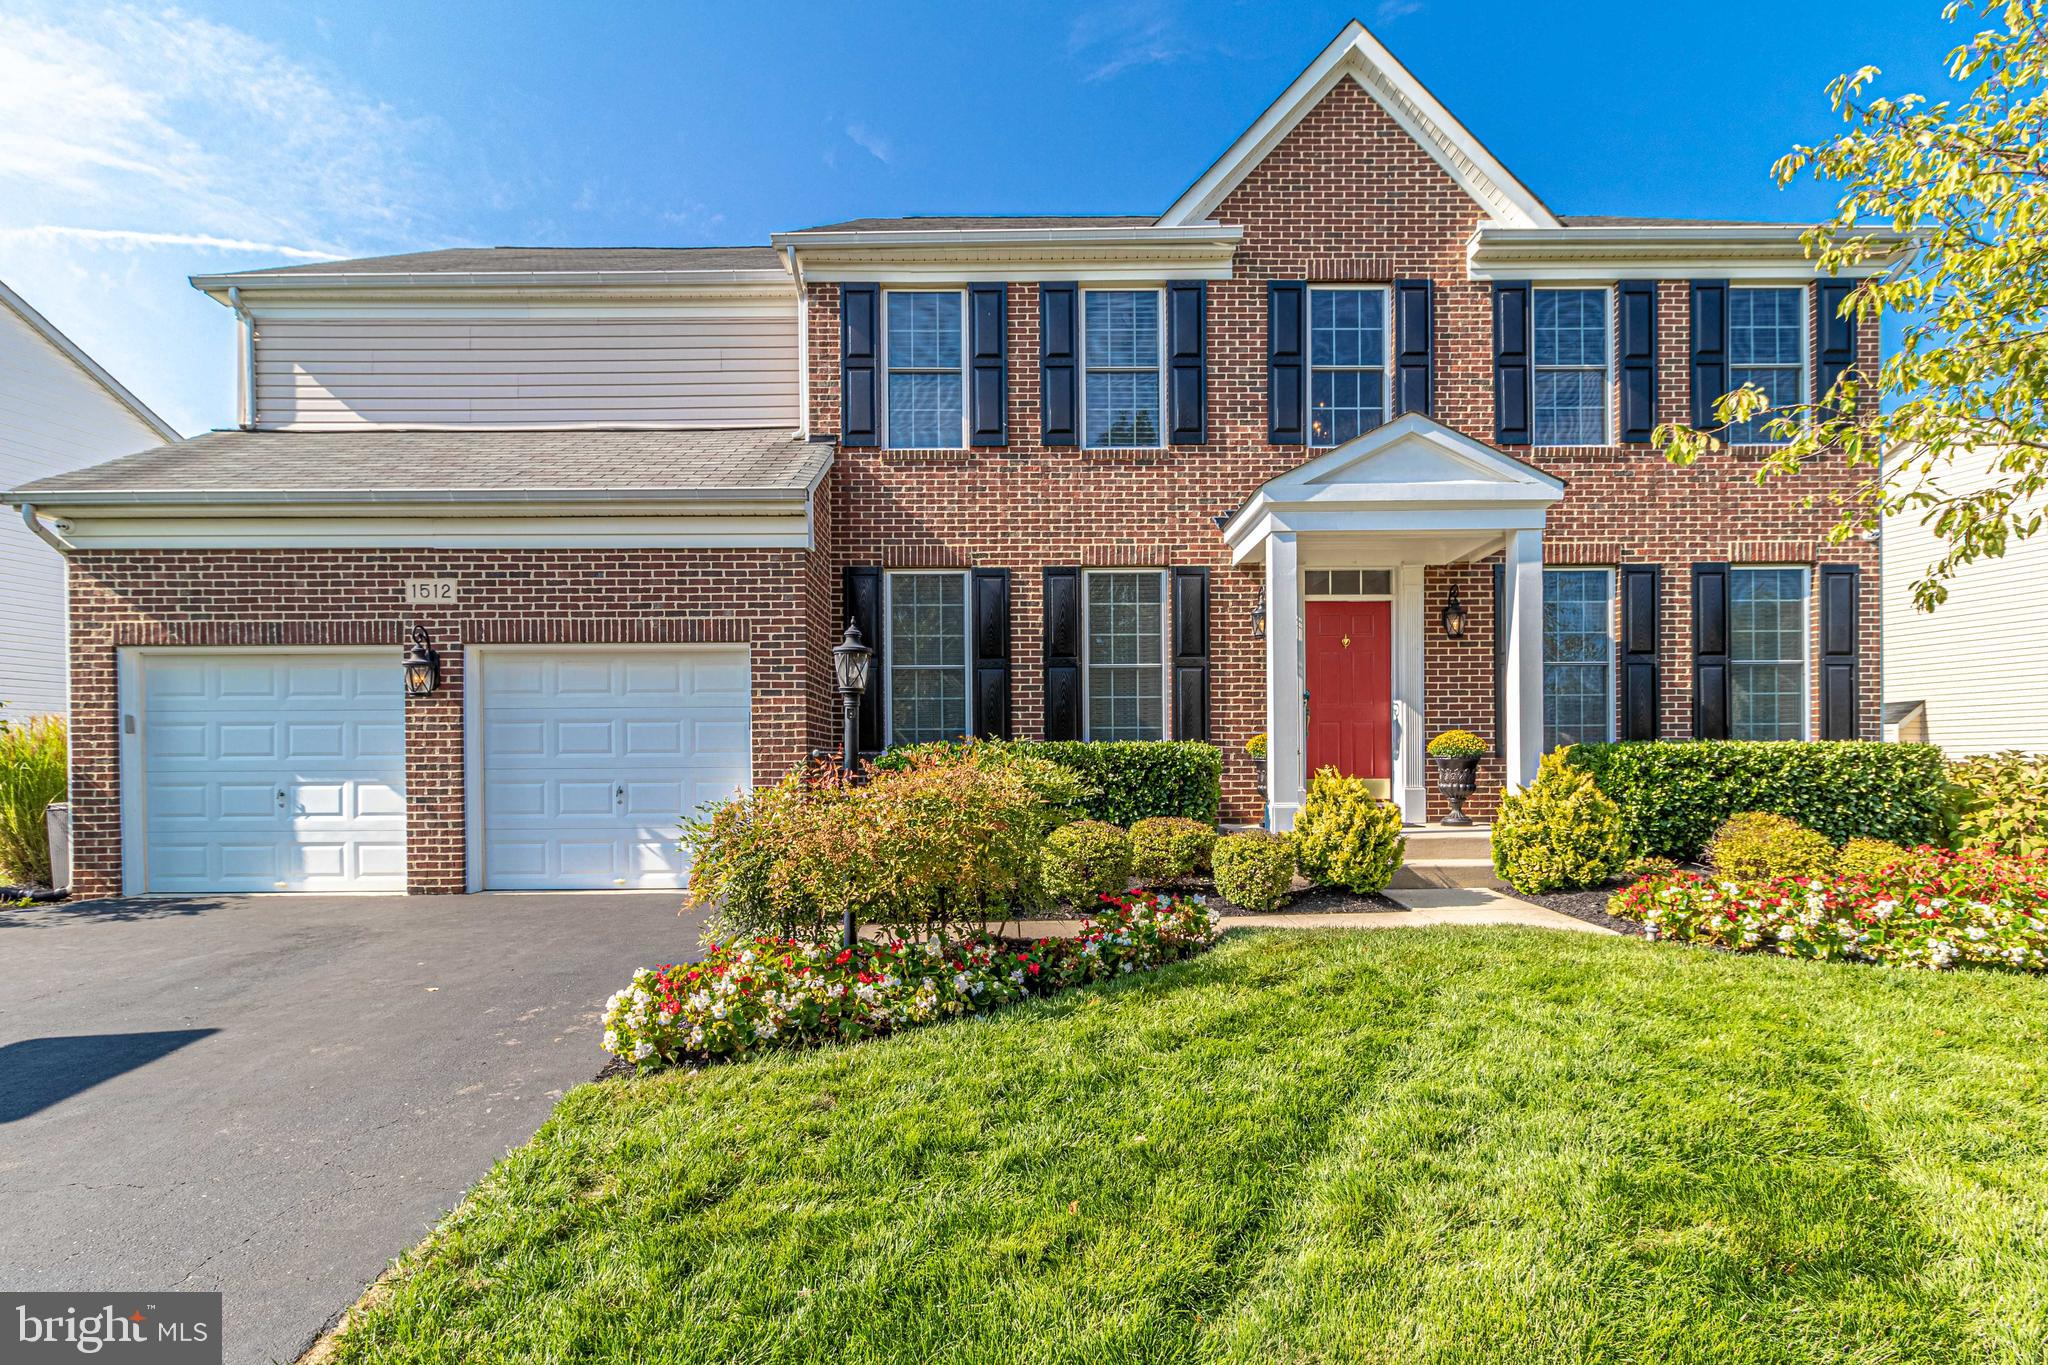 1512 CRITERION DRIVE, ODENTON, MD 21113